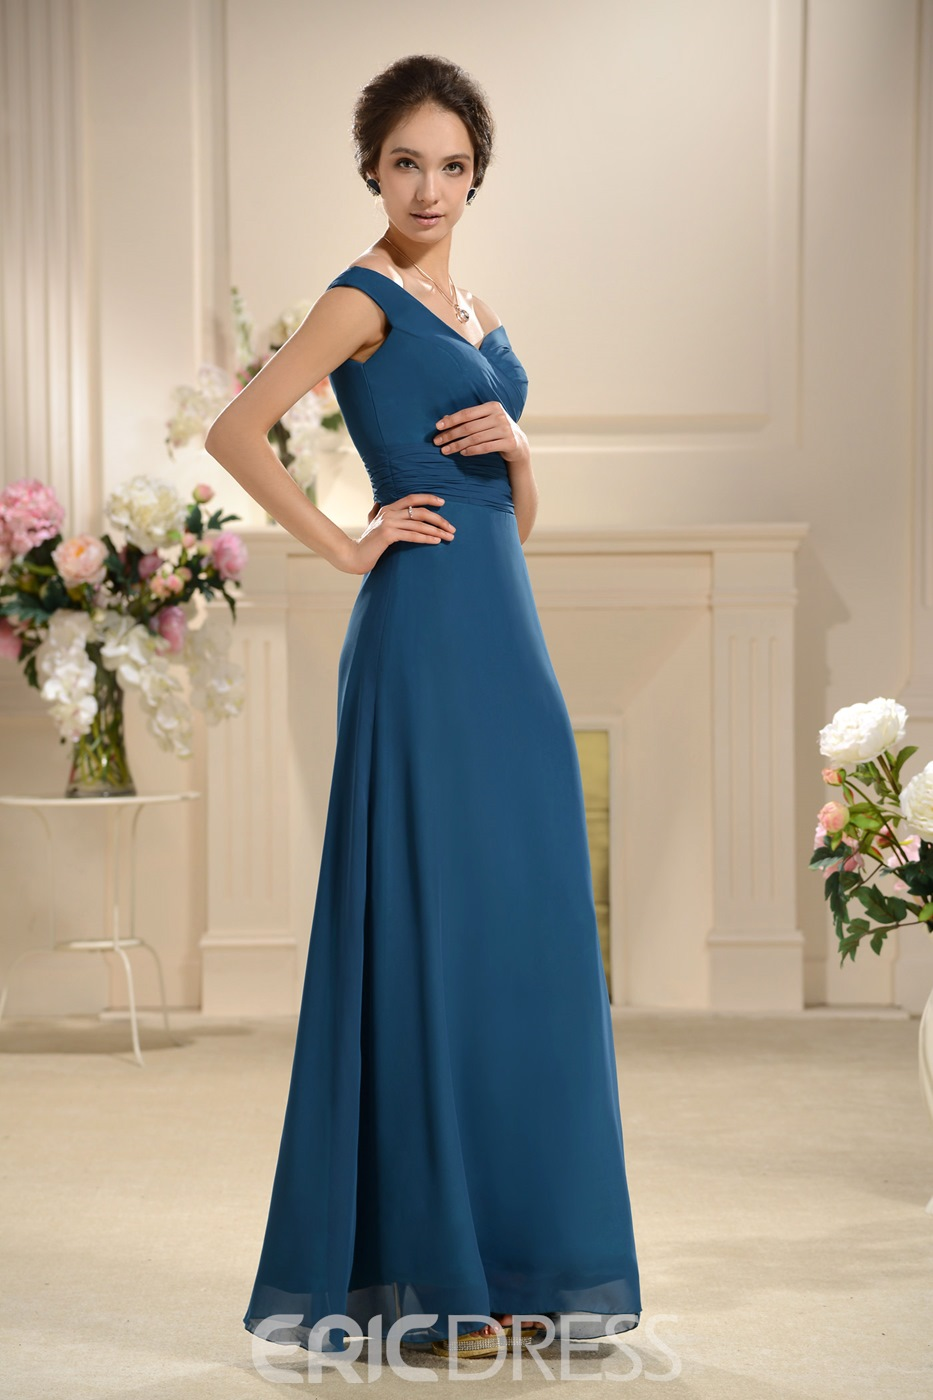 Special A-line Floor Length Off-the-Shoulder Bridesmaids Dress